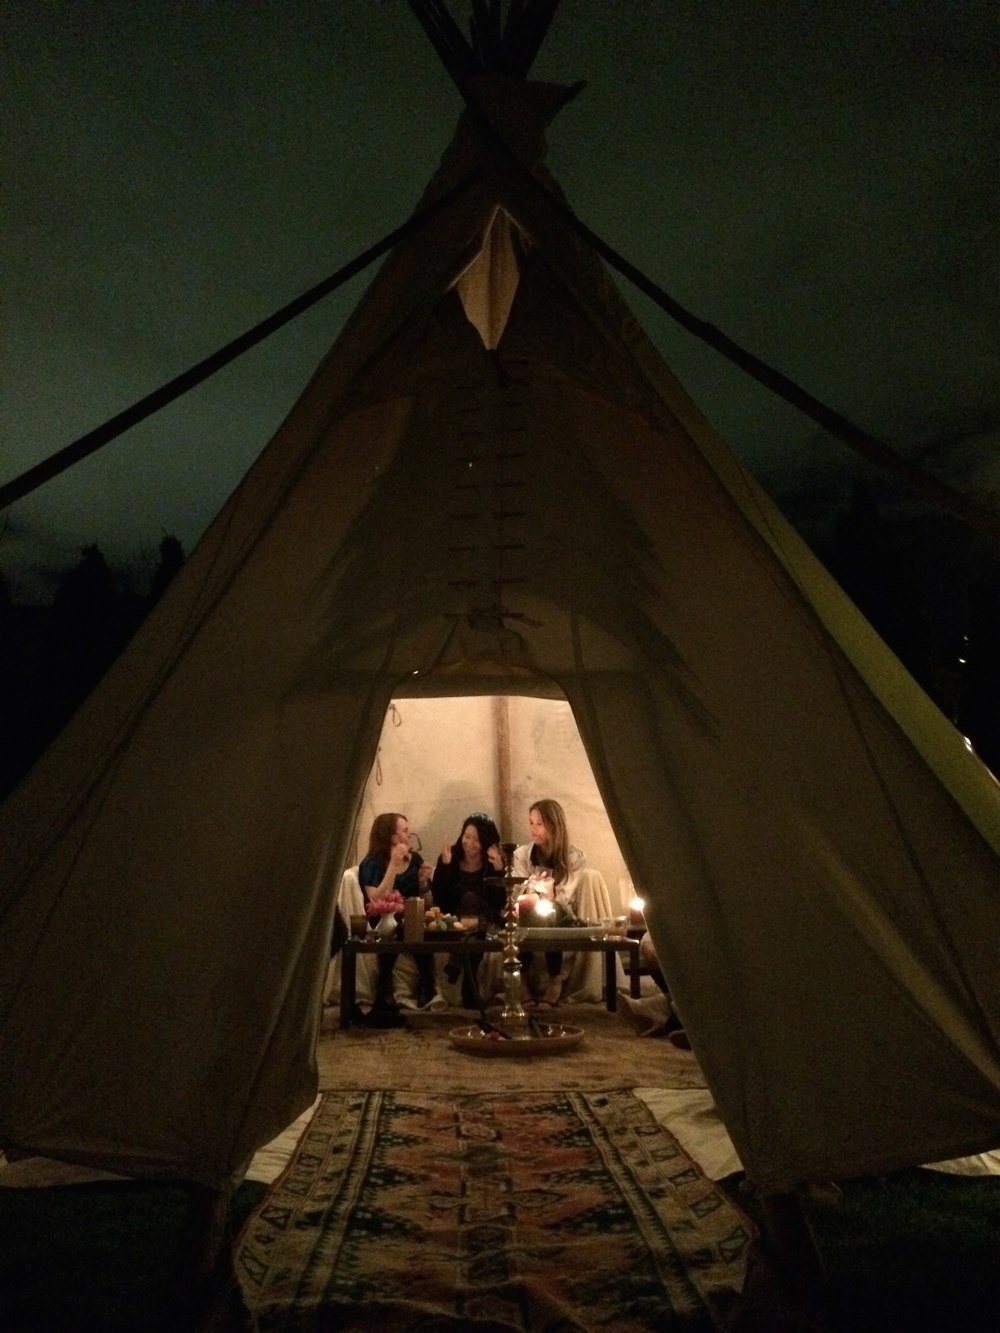 APRIL PRIDE TIPI